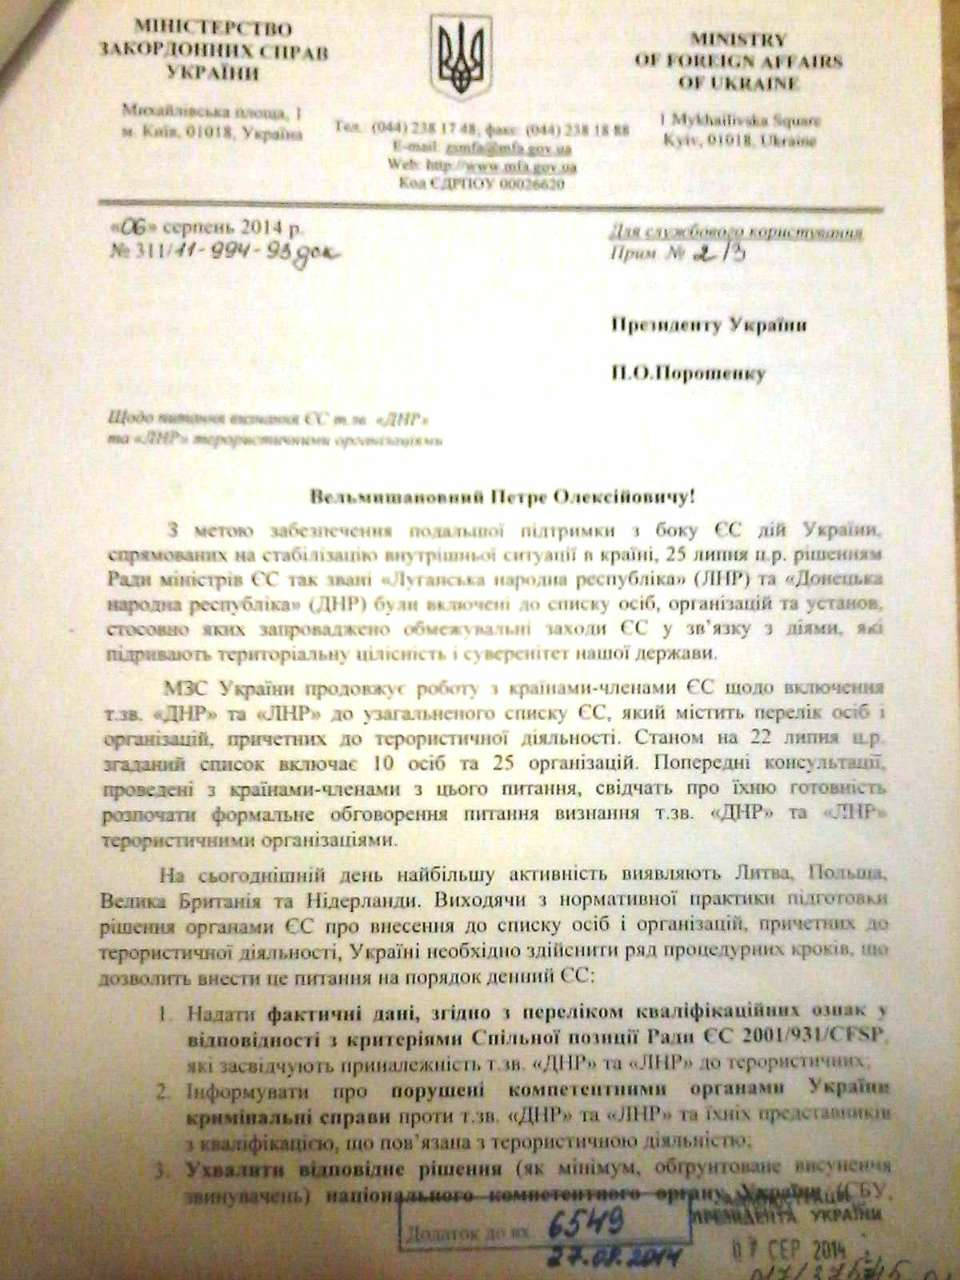 Letter from Ukrainian Foreign Ministry